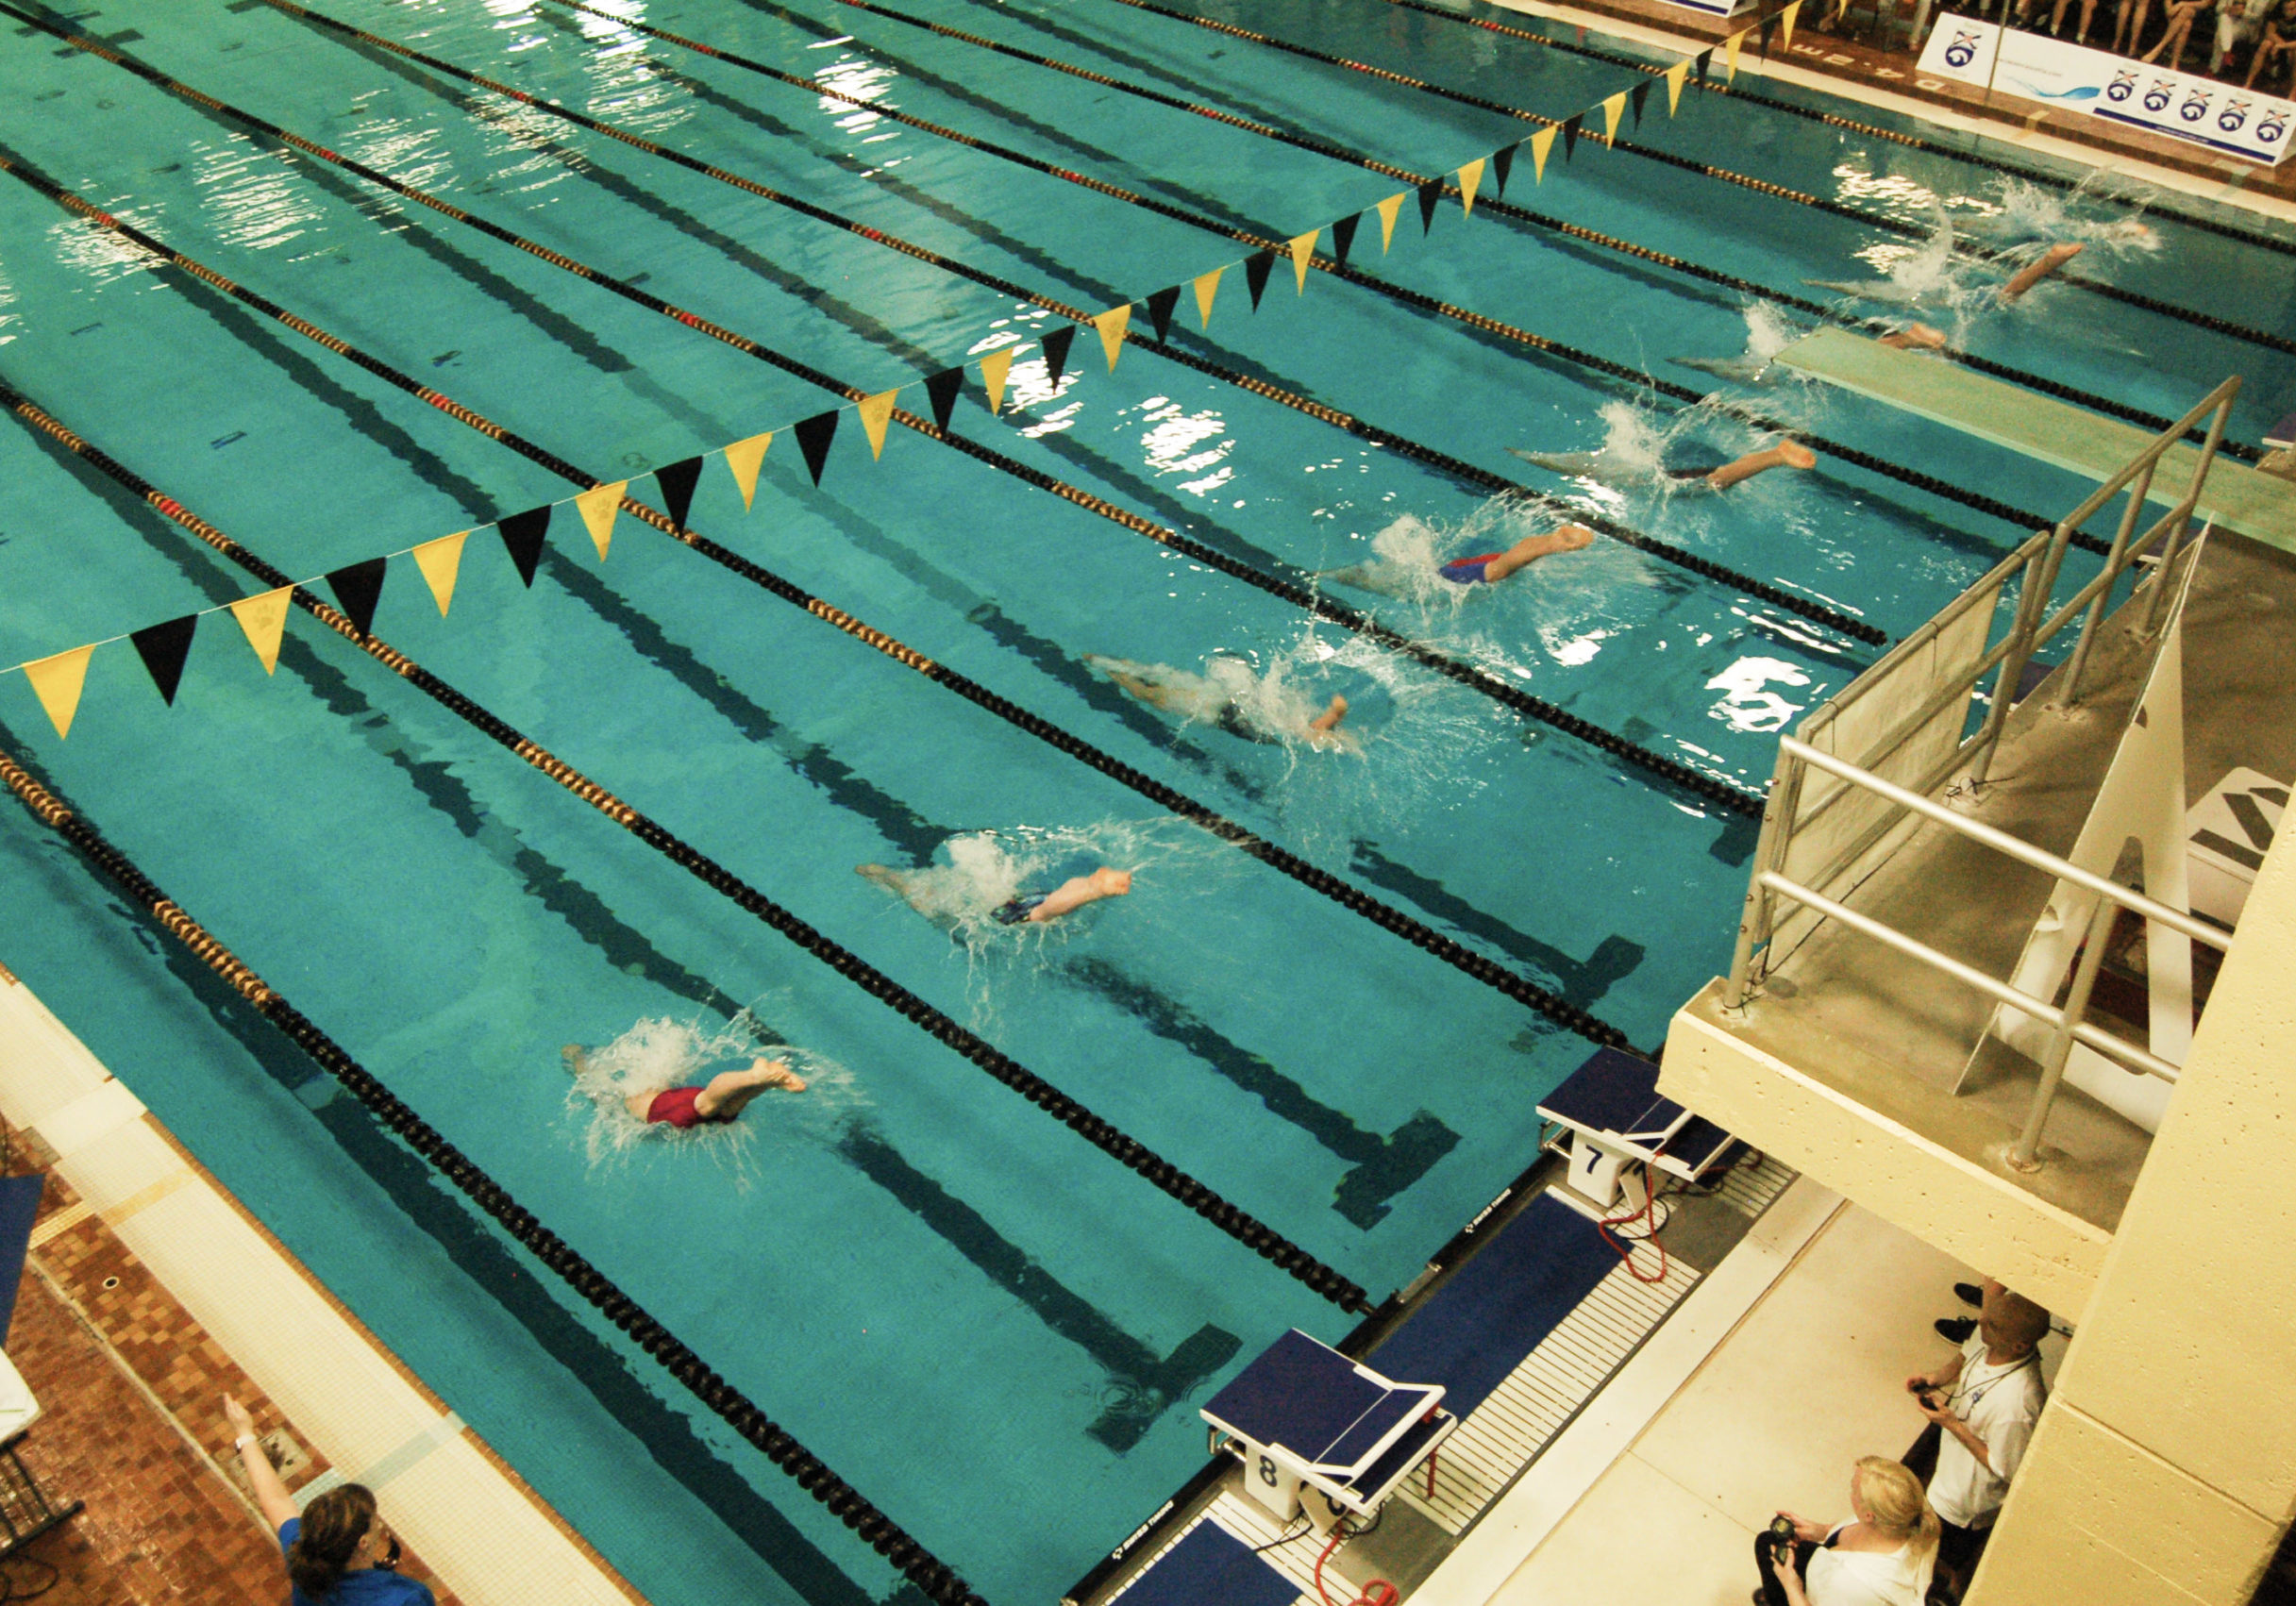 In this image: Swimmers dive into the Dalplex pool during an invitational.